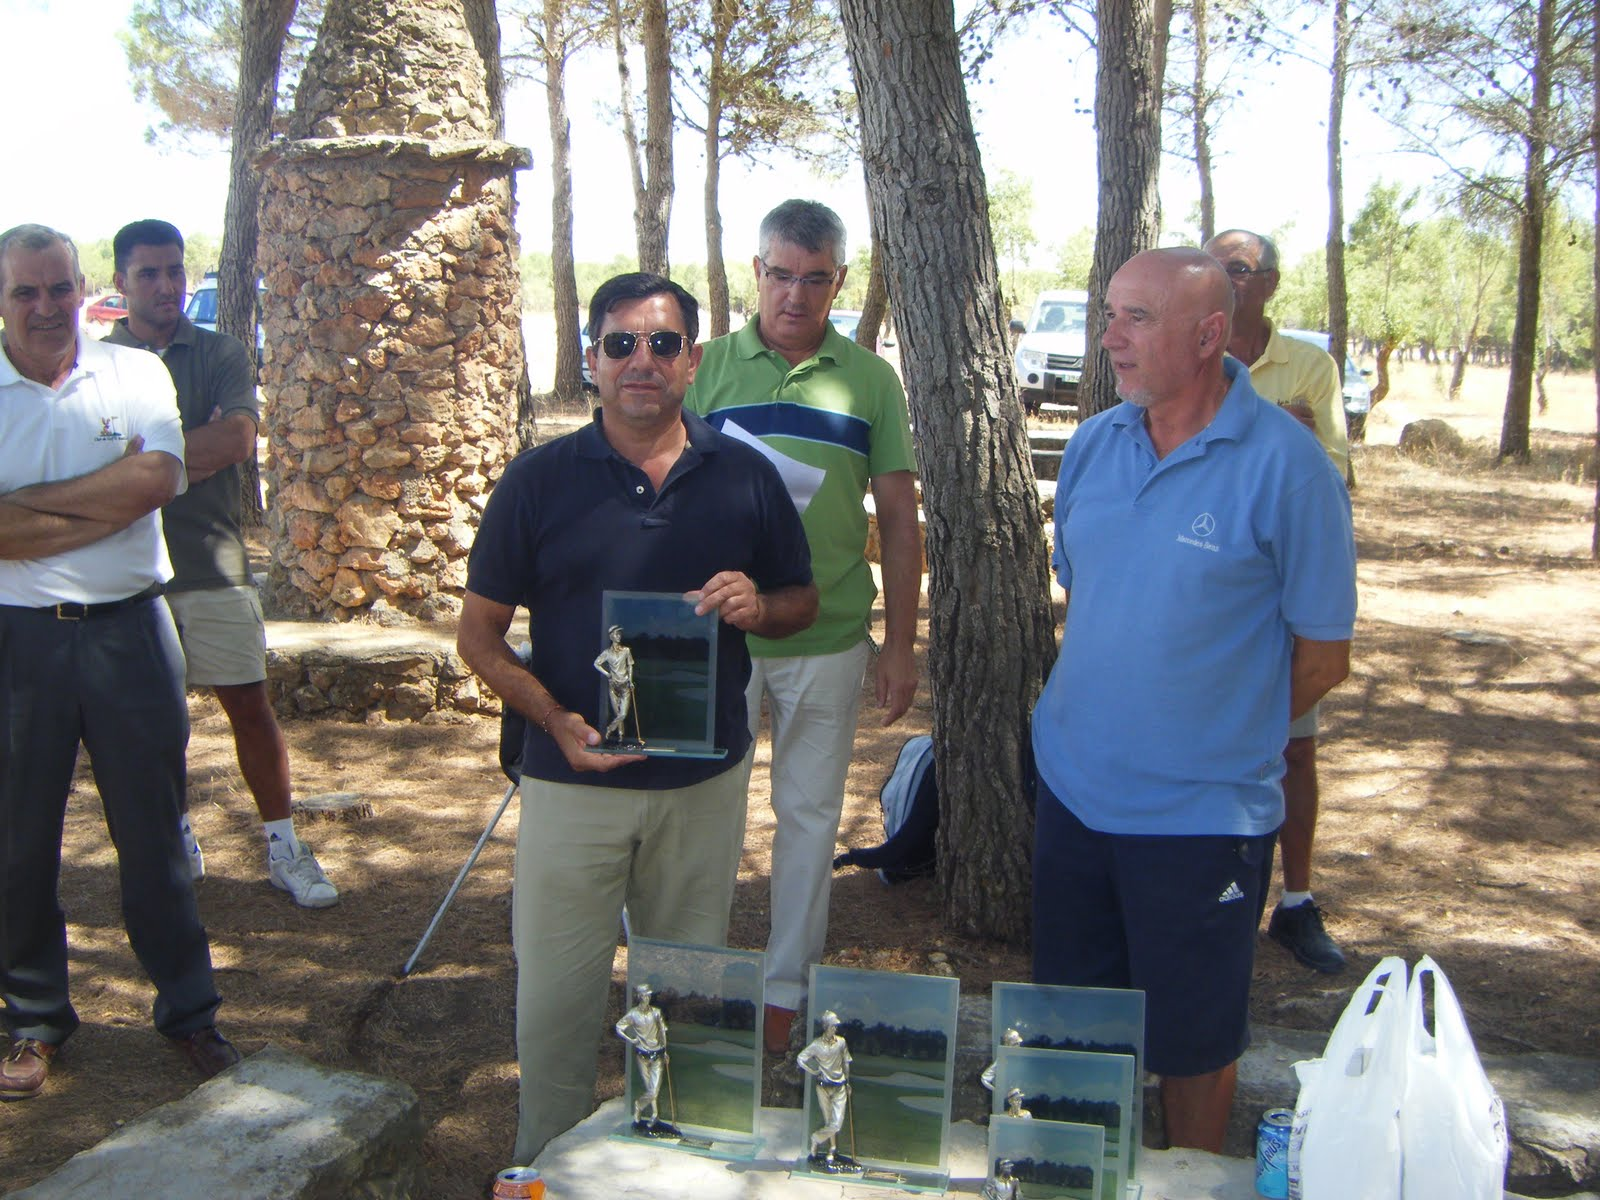 Club de golf el bonillo - Distribuciones picazo ...